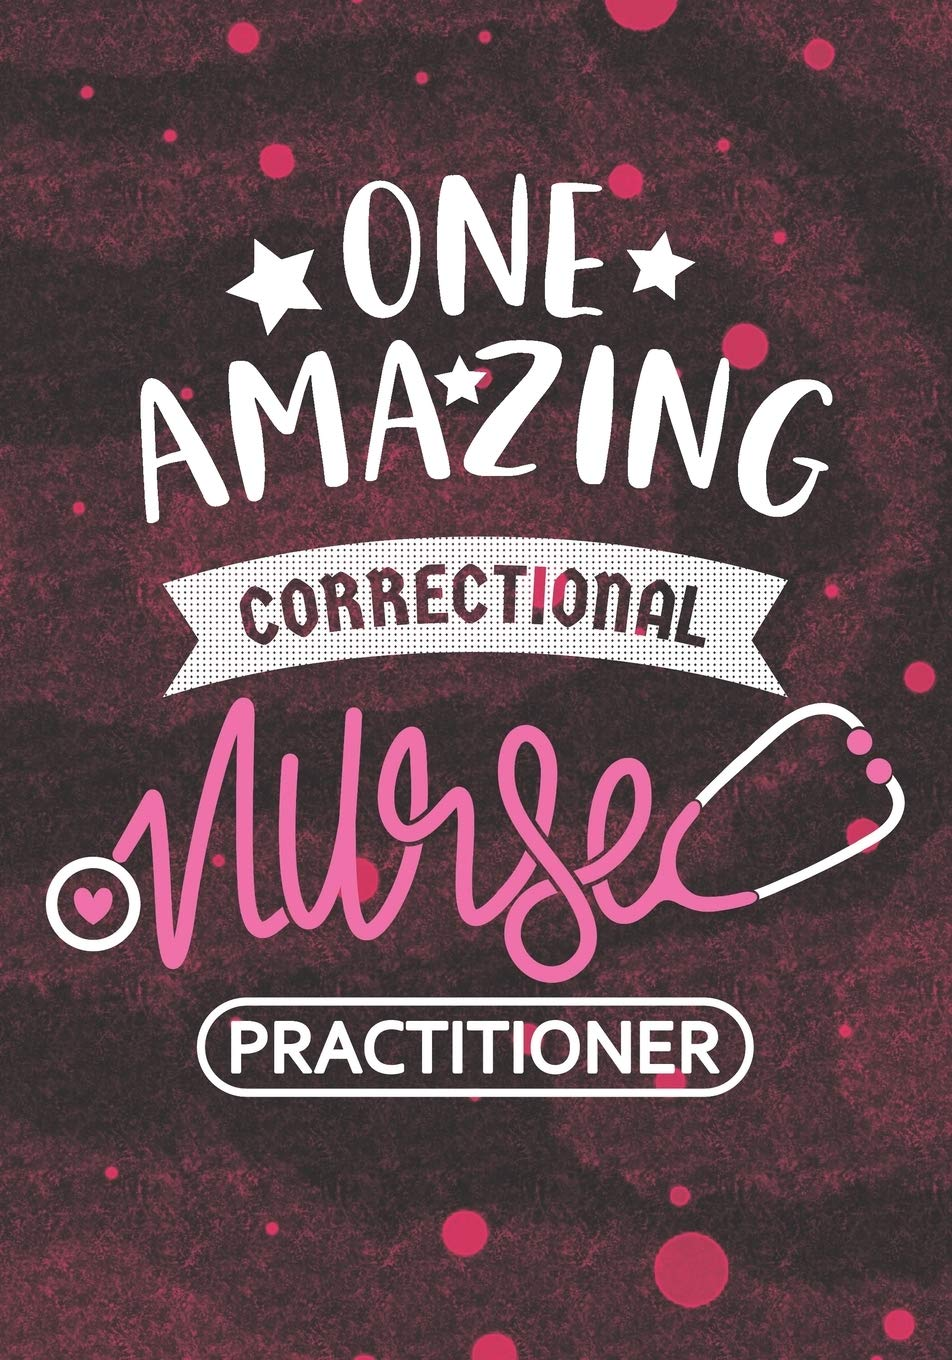 One Amazing Correctional Nurse Practitioner Blank Lined Journal Notebook For Correctional Nurse Practitioner Forensic Nurse Practitioner And Correctional Nursing Student Graduation Gift Diary Notebooks Own 9781086966824 Amazon Com Books